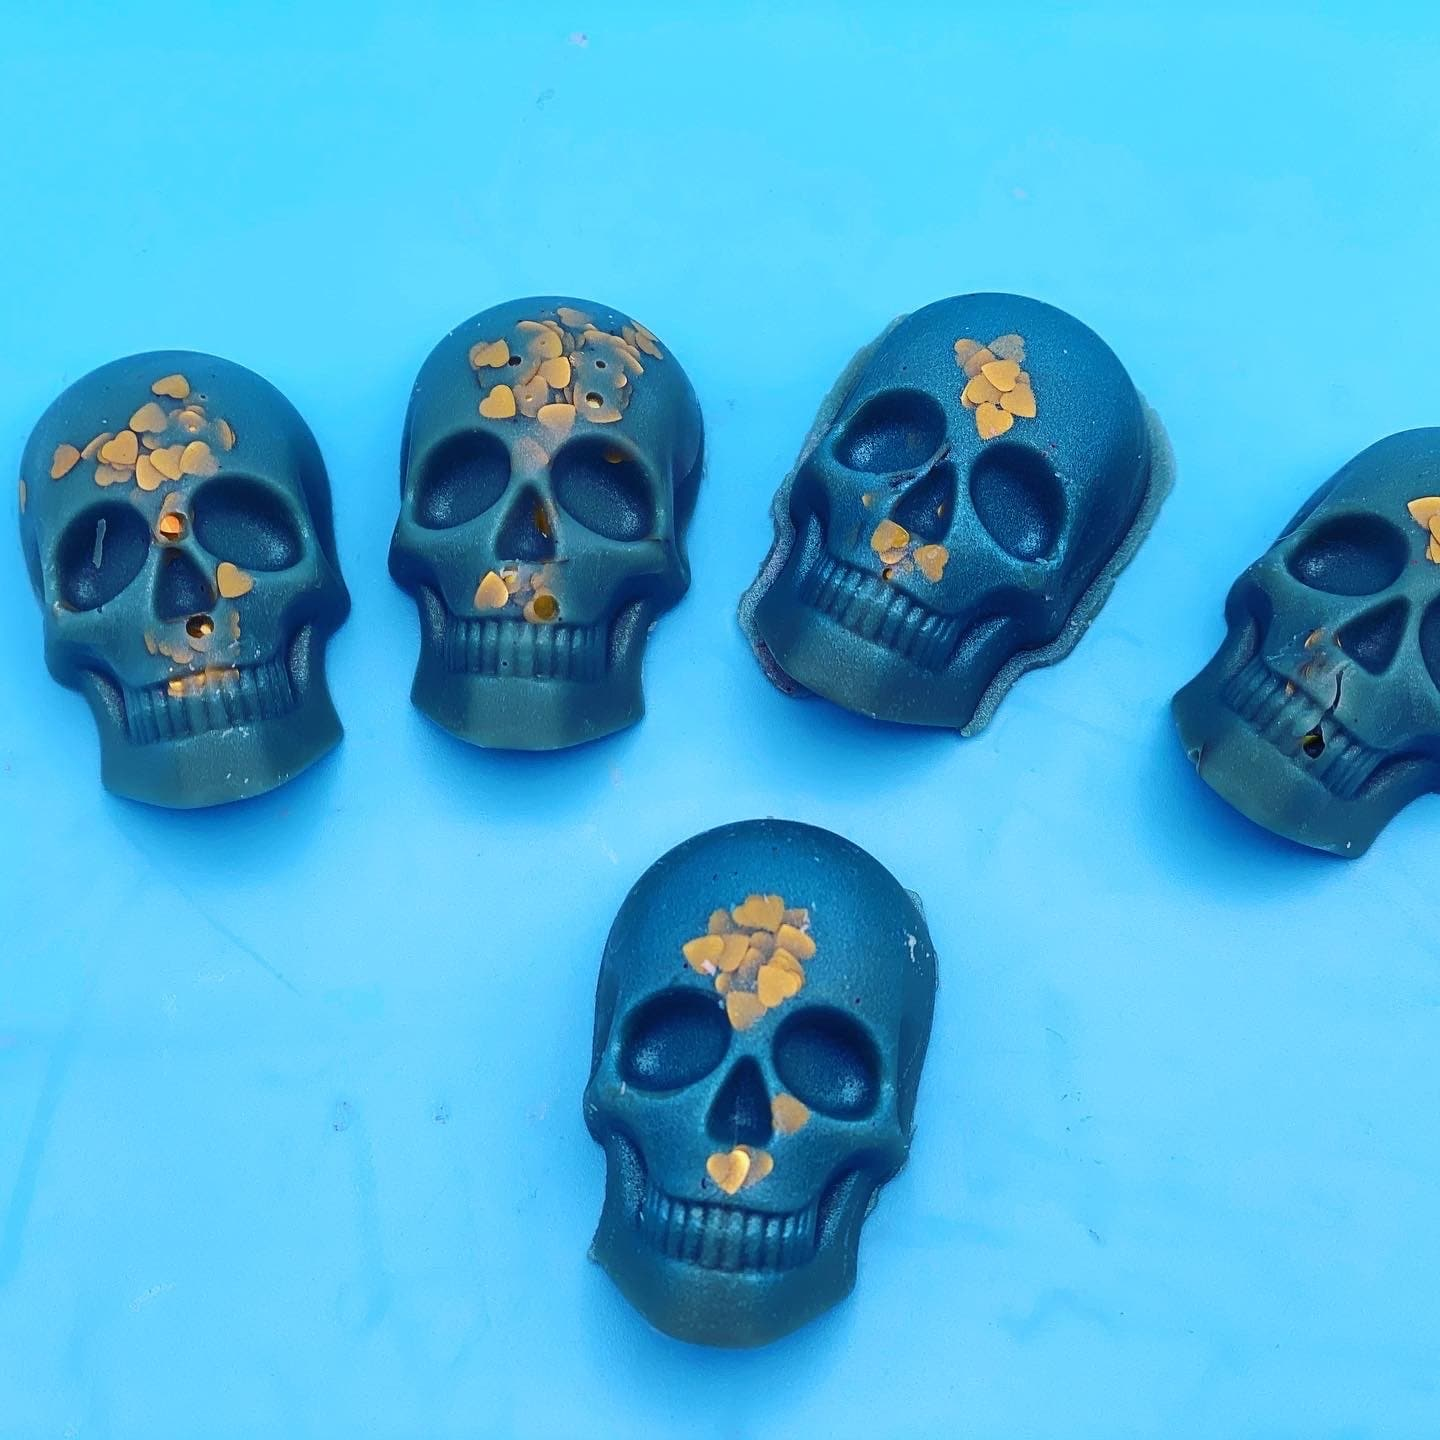 Hocus pocus skull melts - Pugglewick Candles